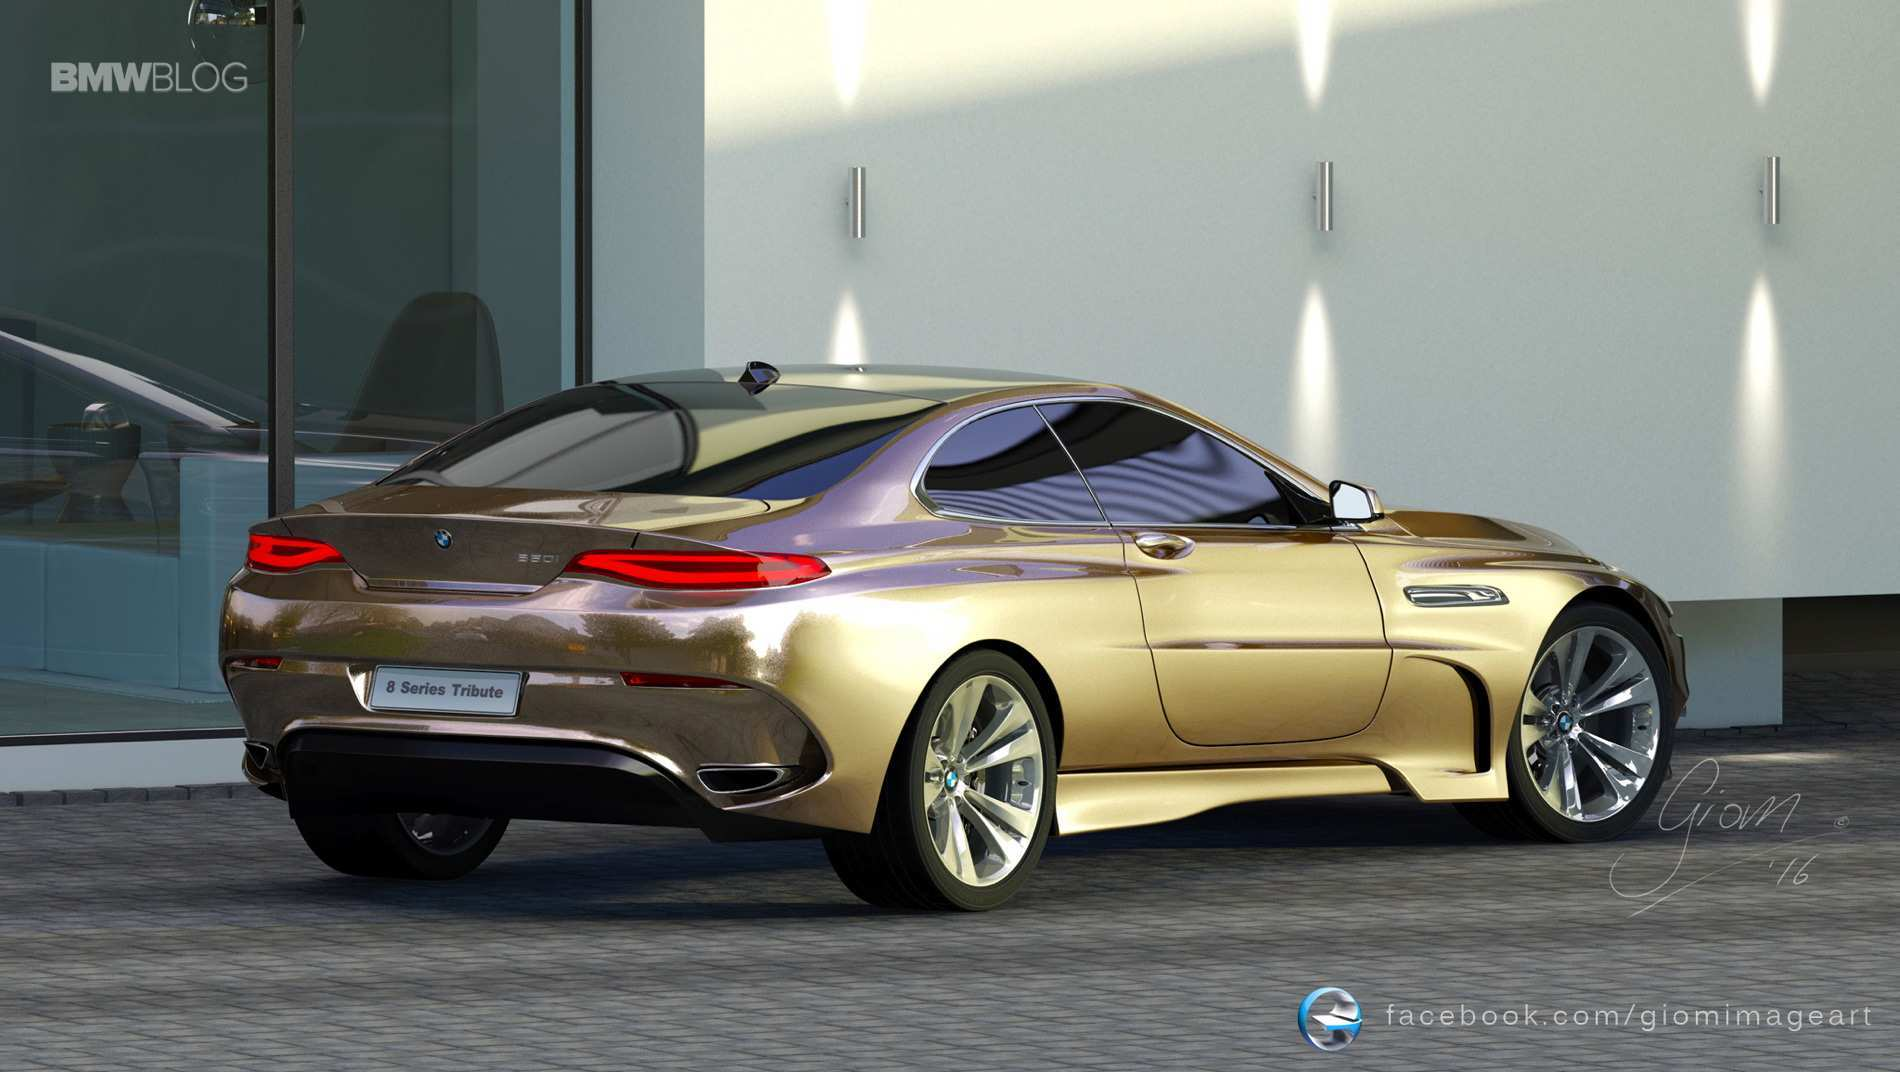 43 Concept of 2020 Bmw 850 Performance by 2020 Bmw 850